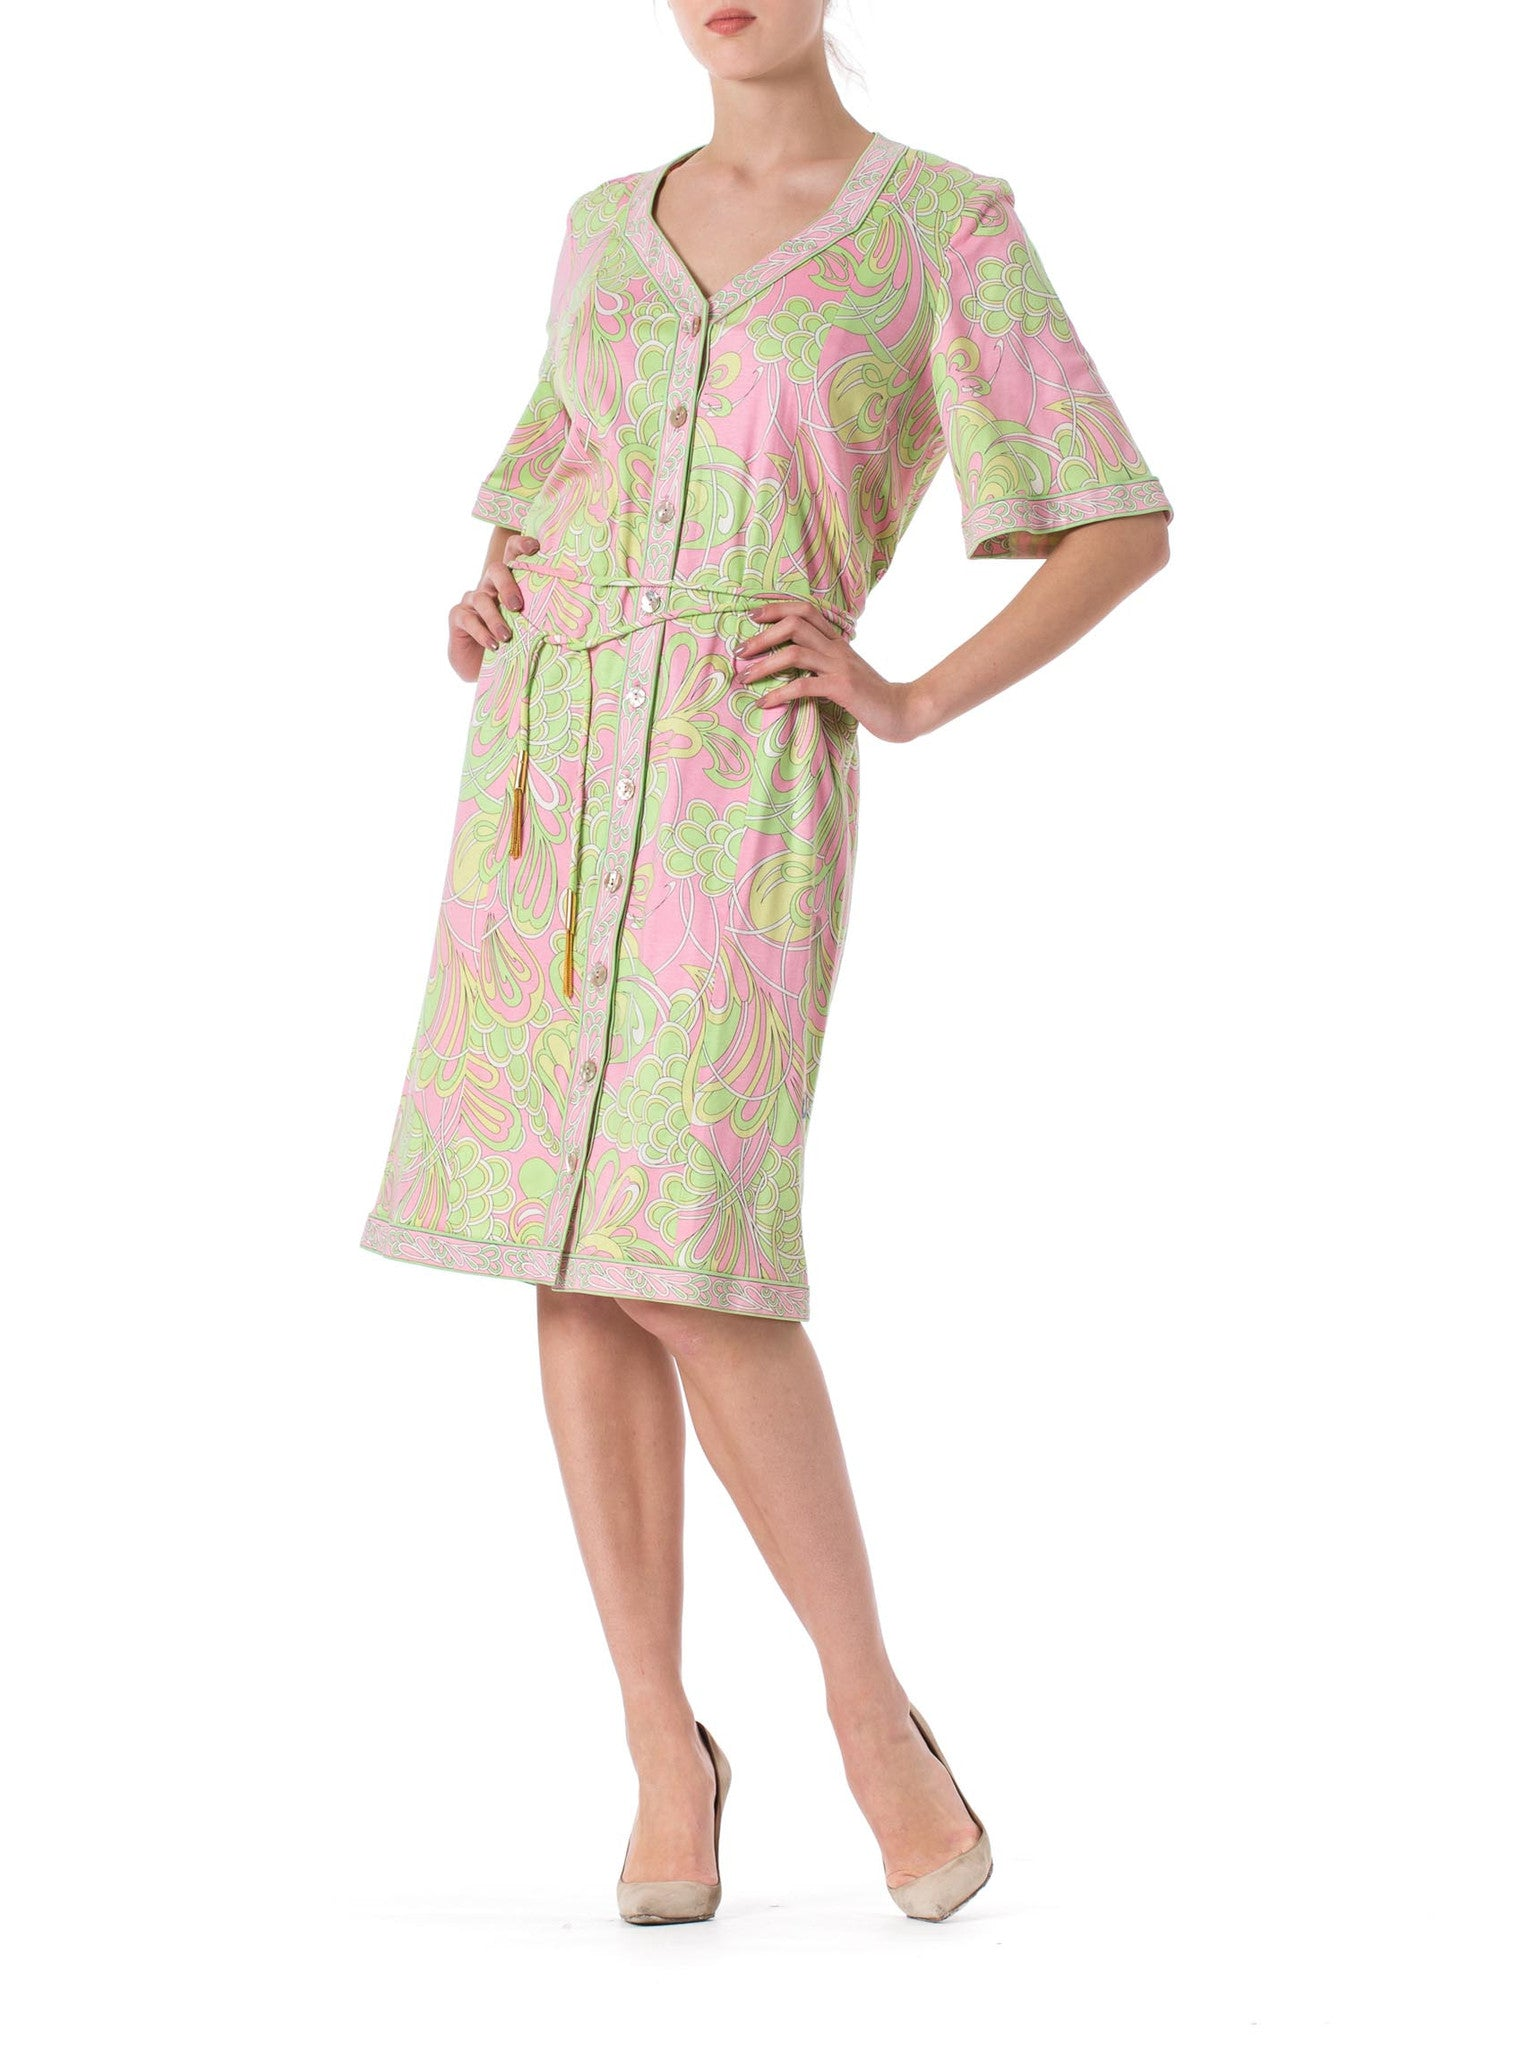 1960s Averardo Bessi Mod Abstract Psychedelic Robe Button Up Dress